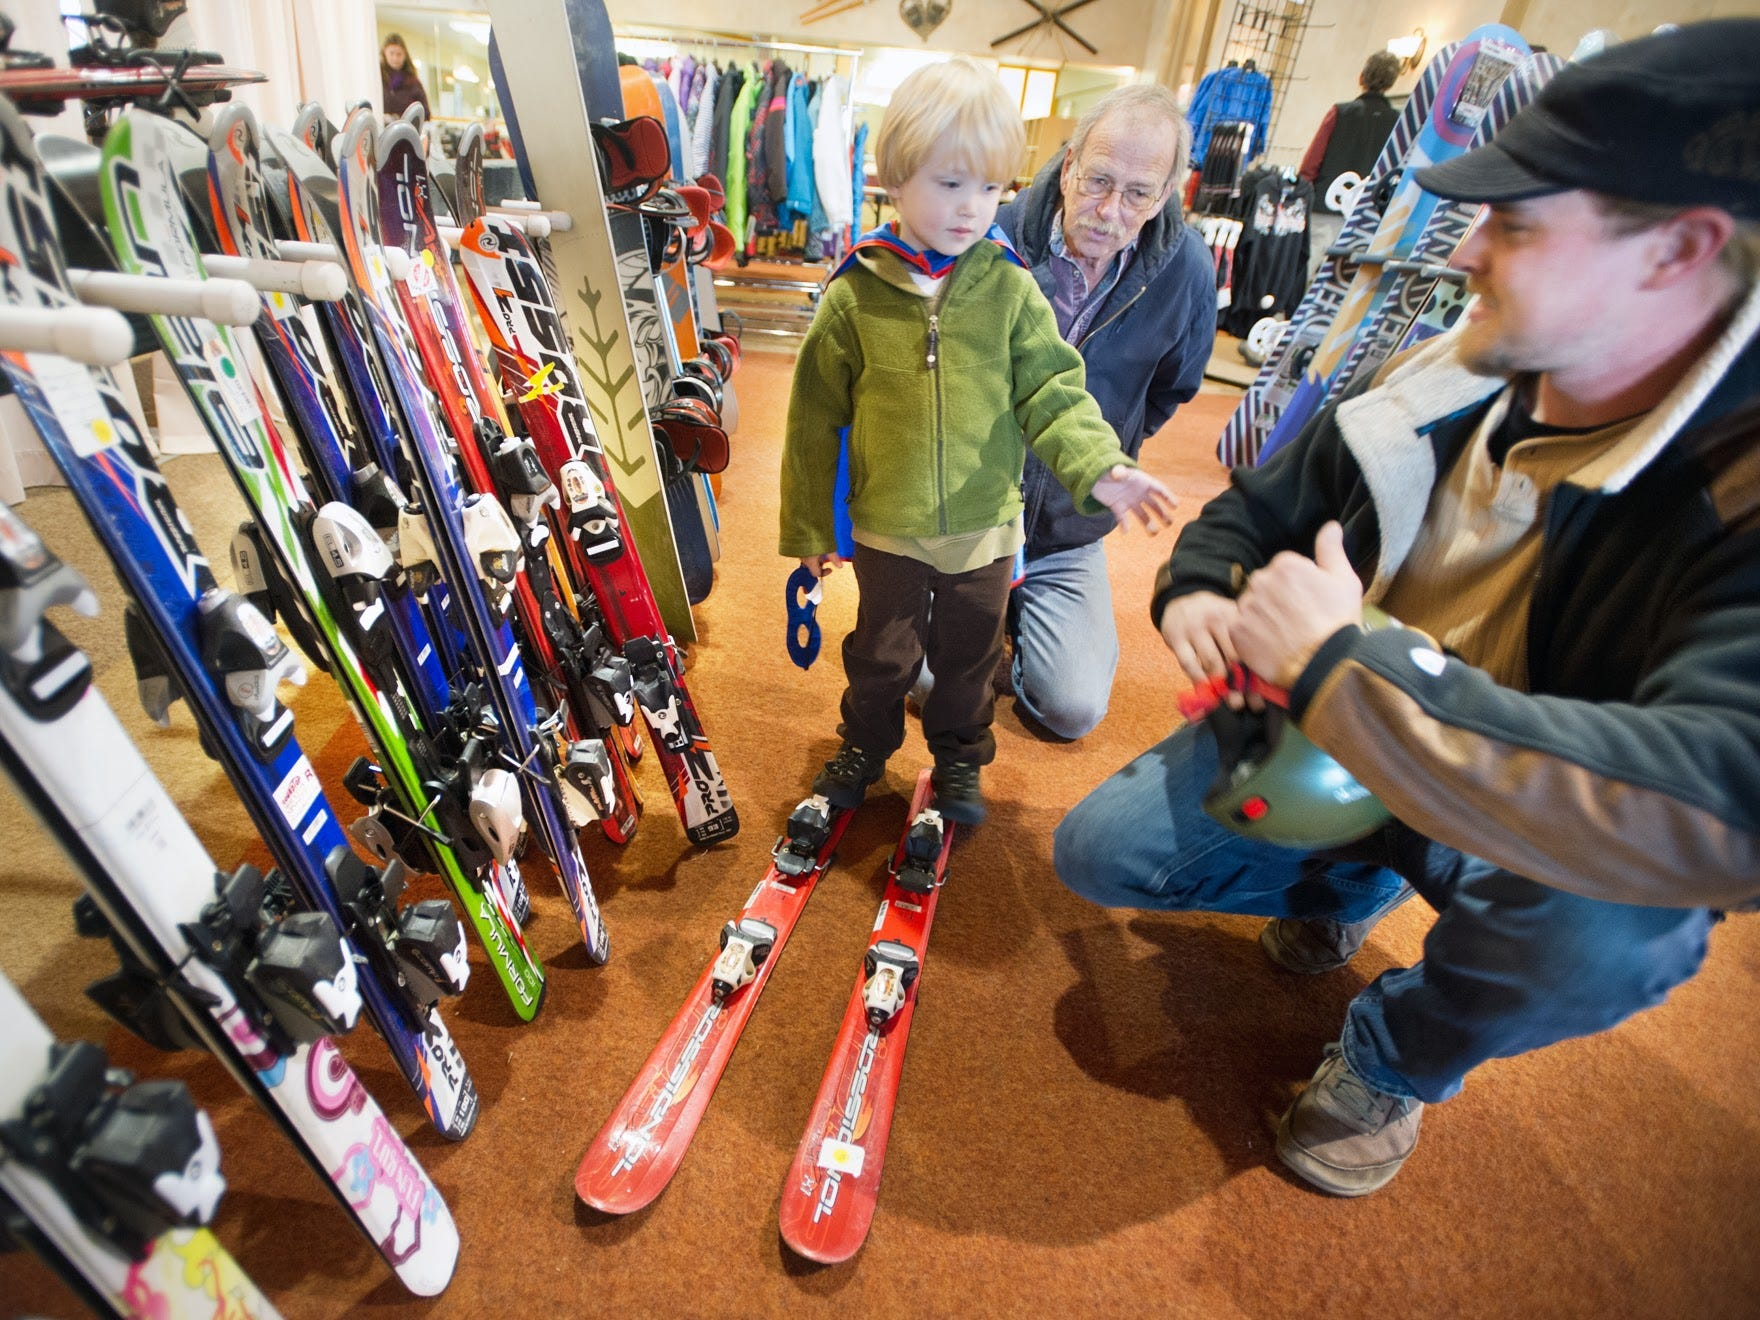 From the left, Mason Lee Miller, age 4, wears a super hero cape while trying on new skis during Roundtop Mountain Resort's Fall Extravaganza with his grandfather Jeff Miller and father Brent Miller all of Freeland Maryland on November 4, 2012